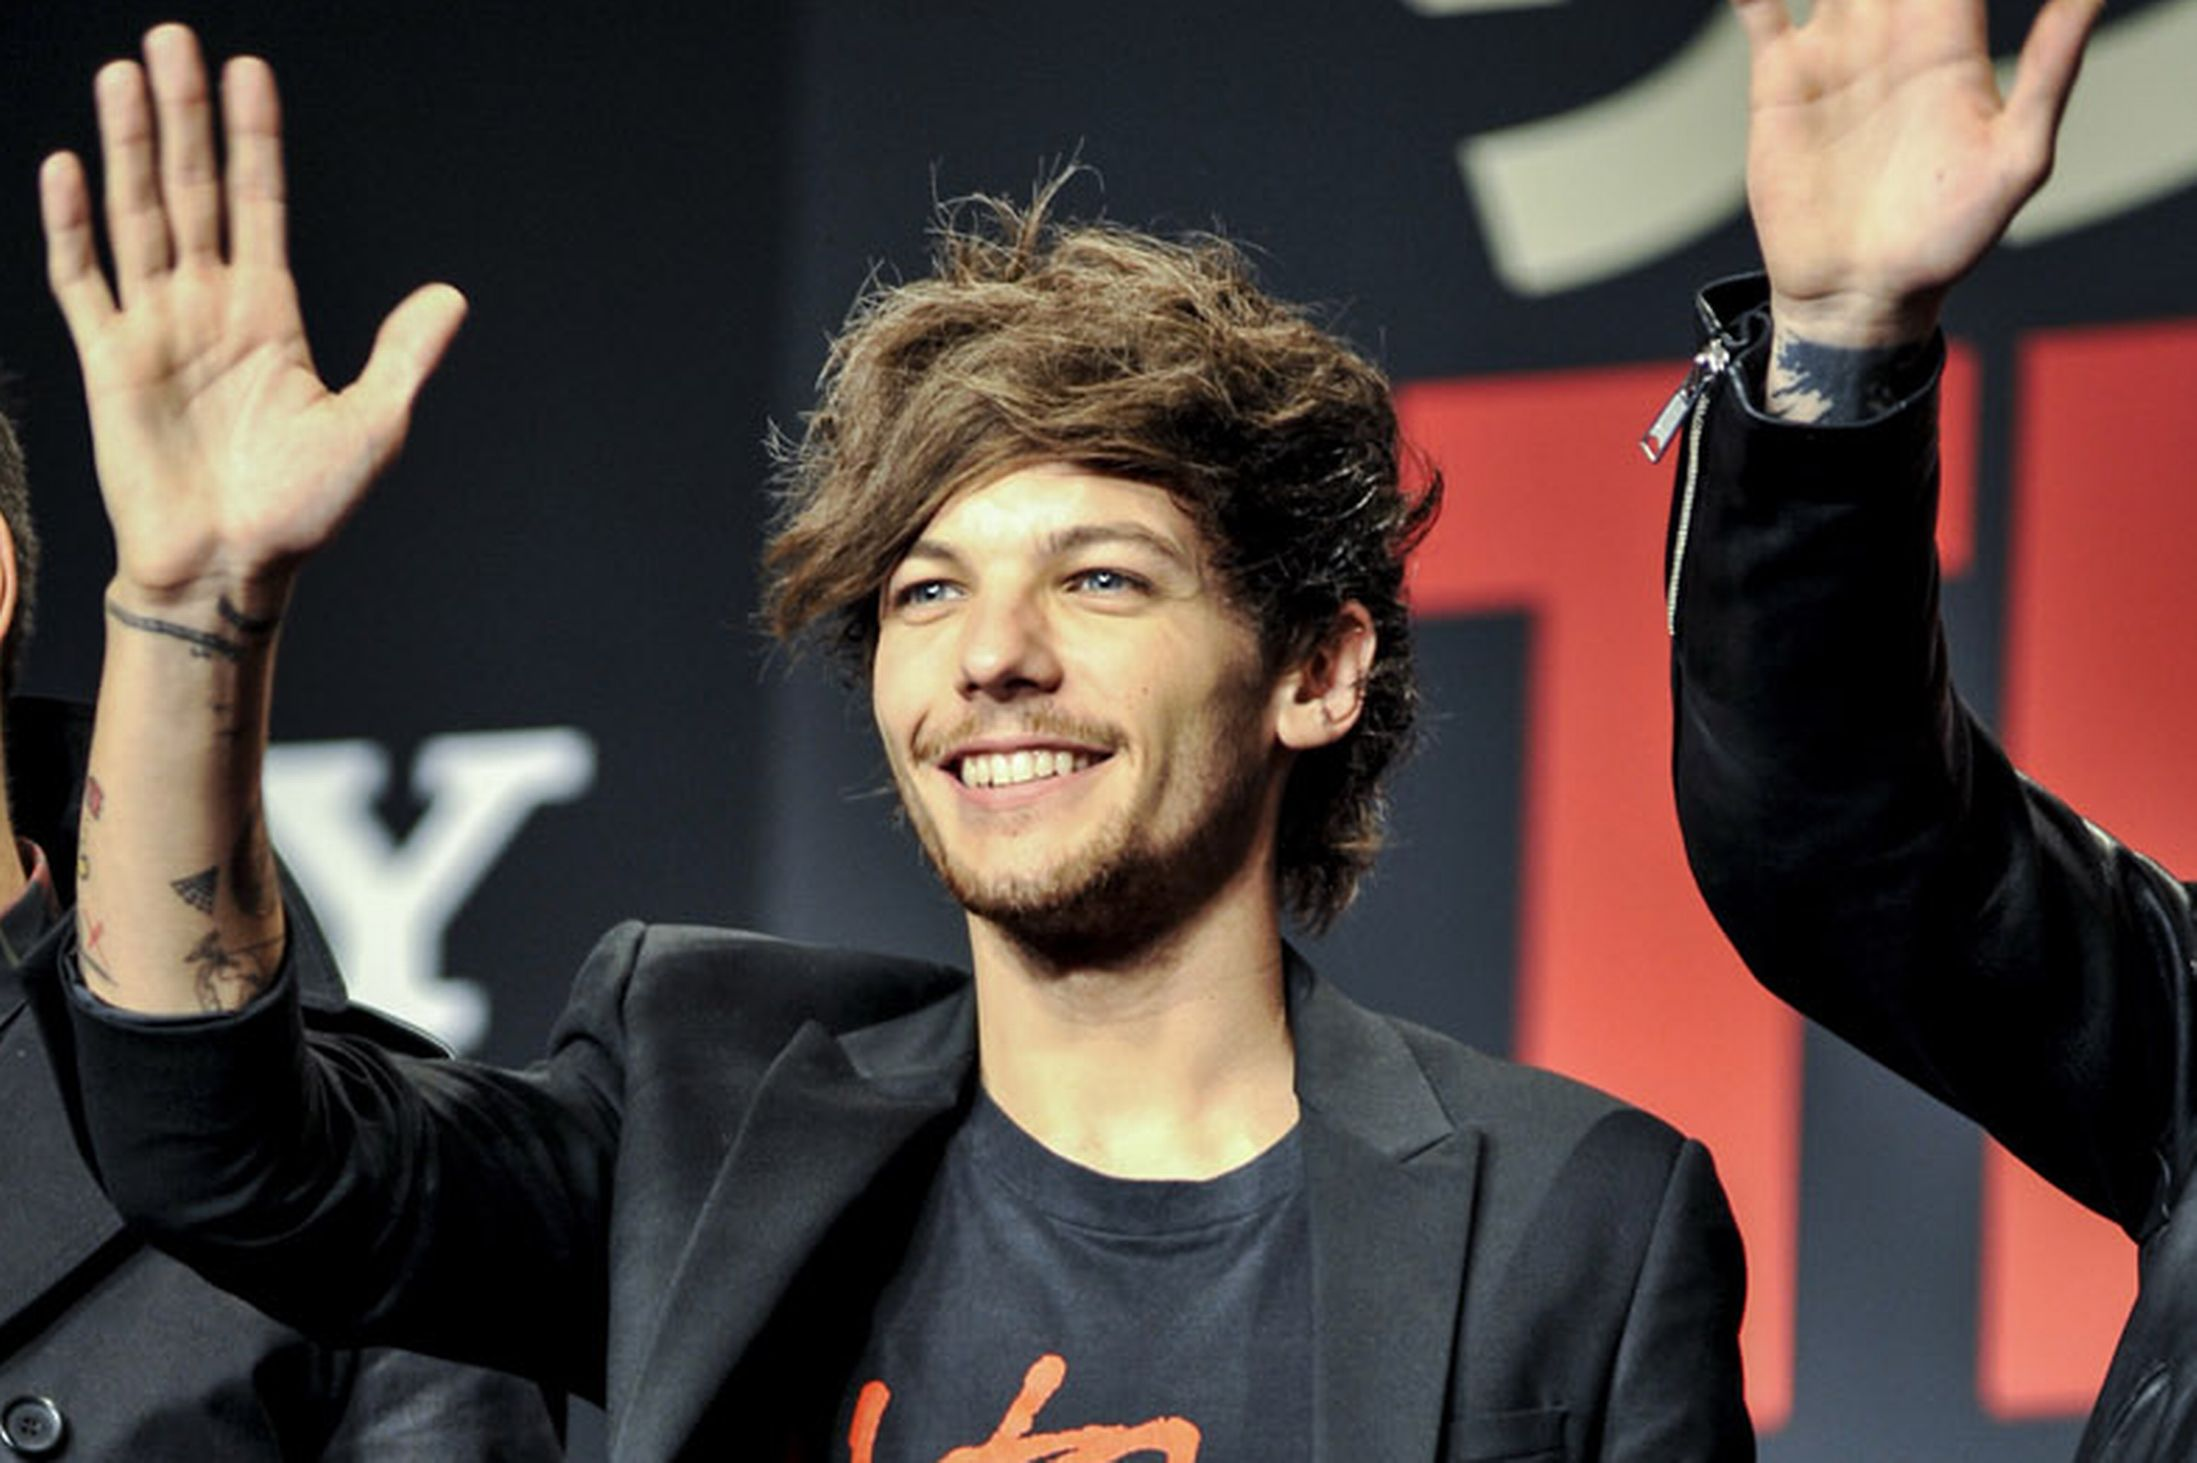 Louis Tomlinson Wallpapers High Quality Download Free